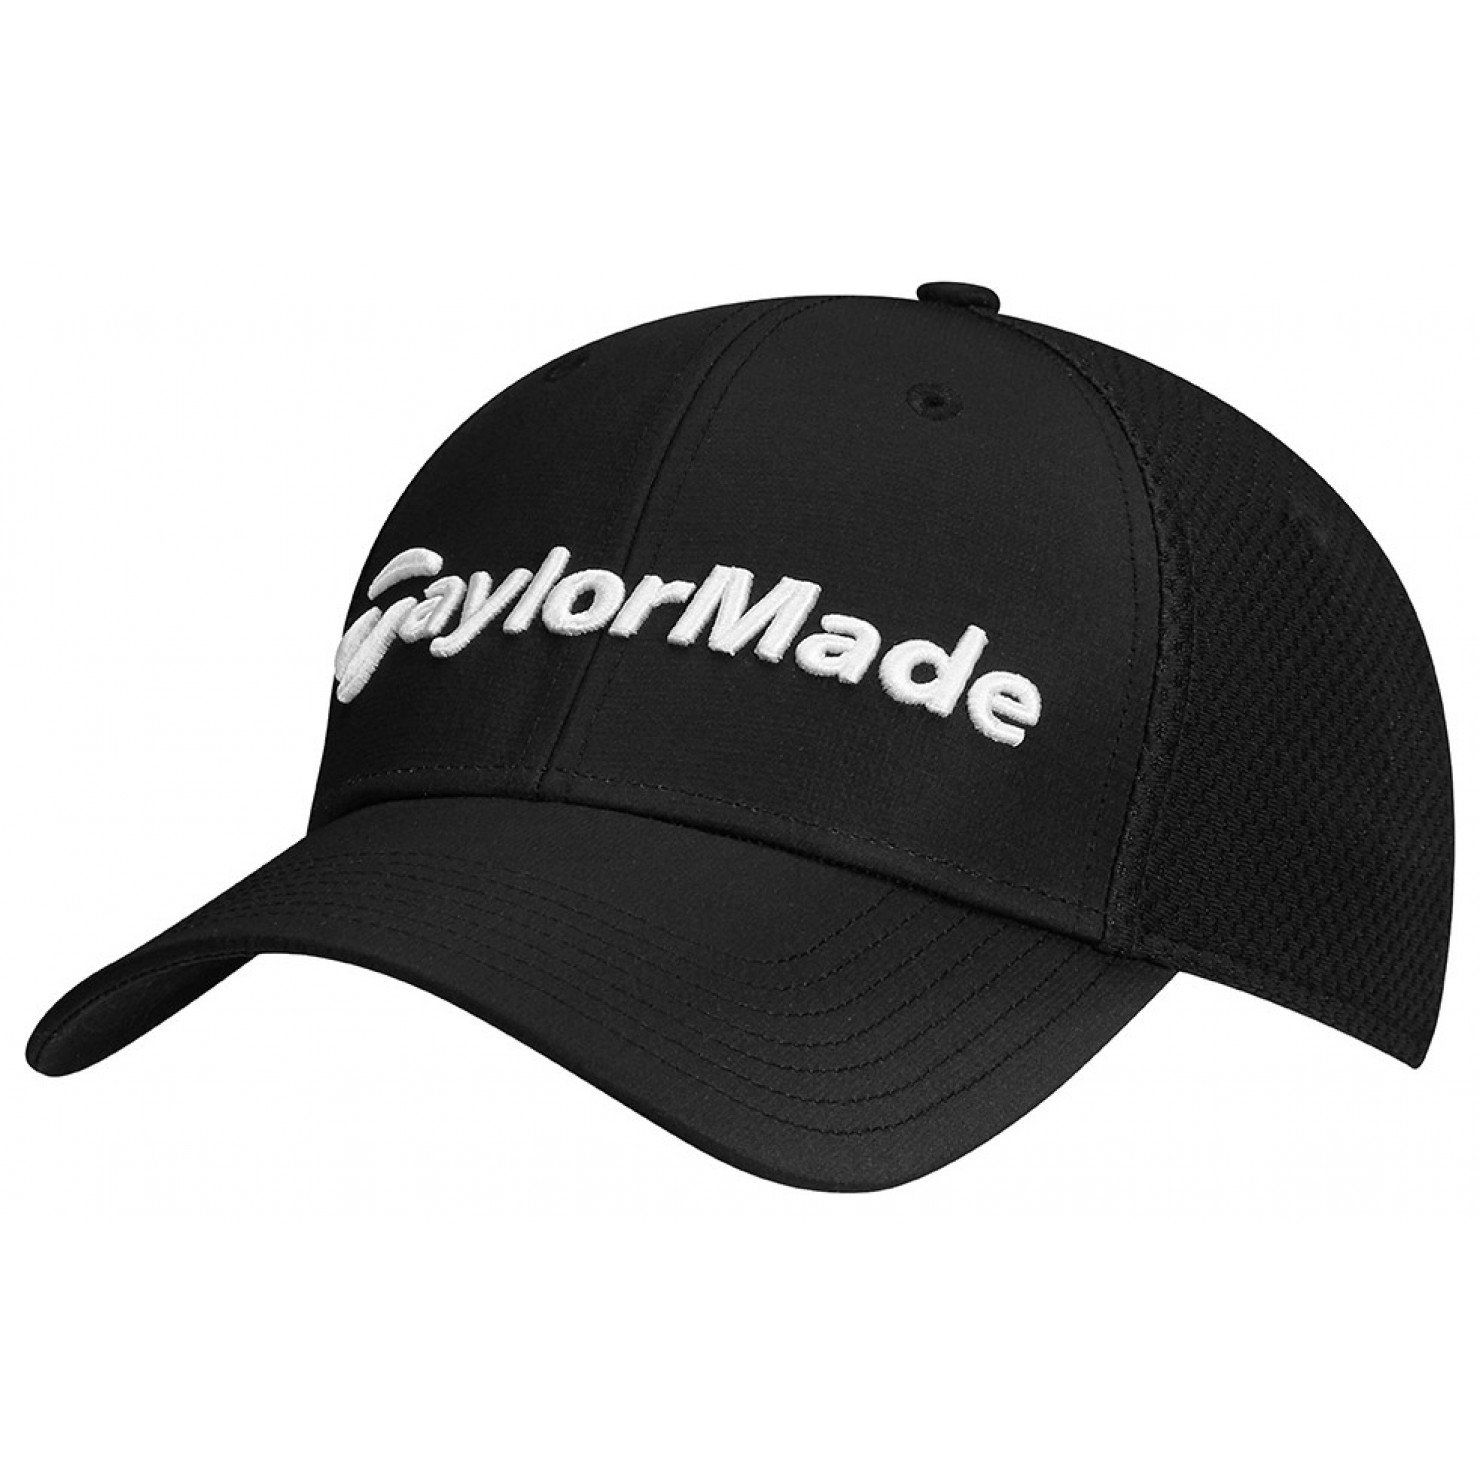 TaylorMade Golf 2017 performance cage hat black l/xl